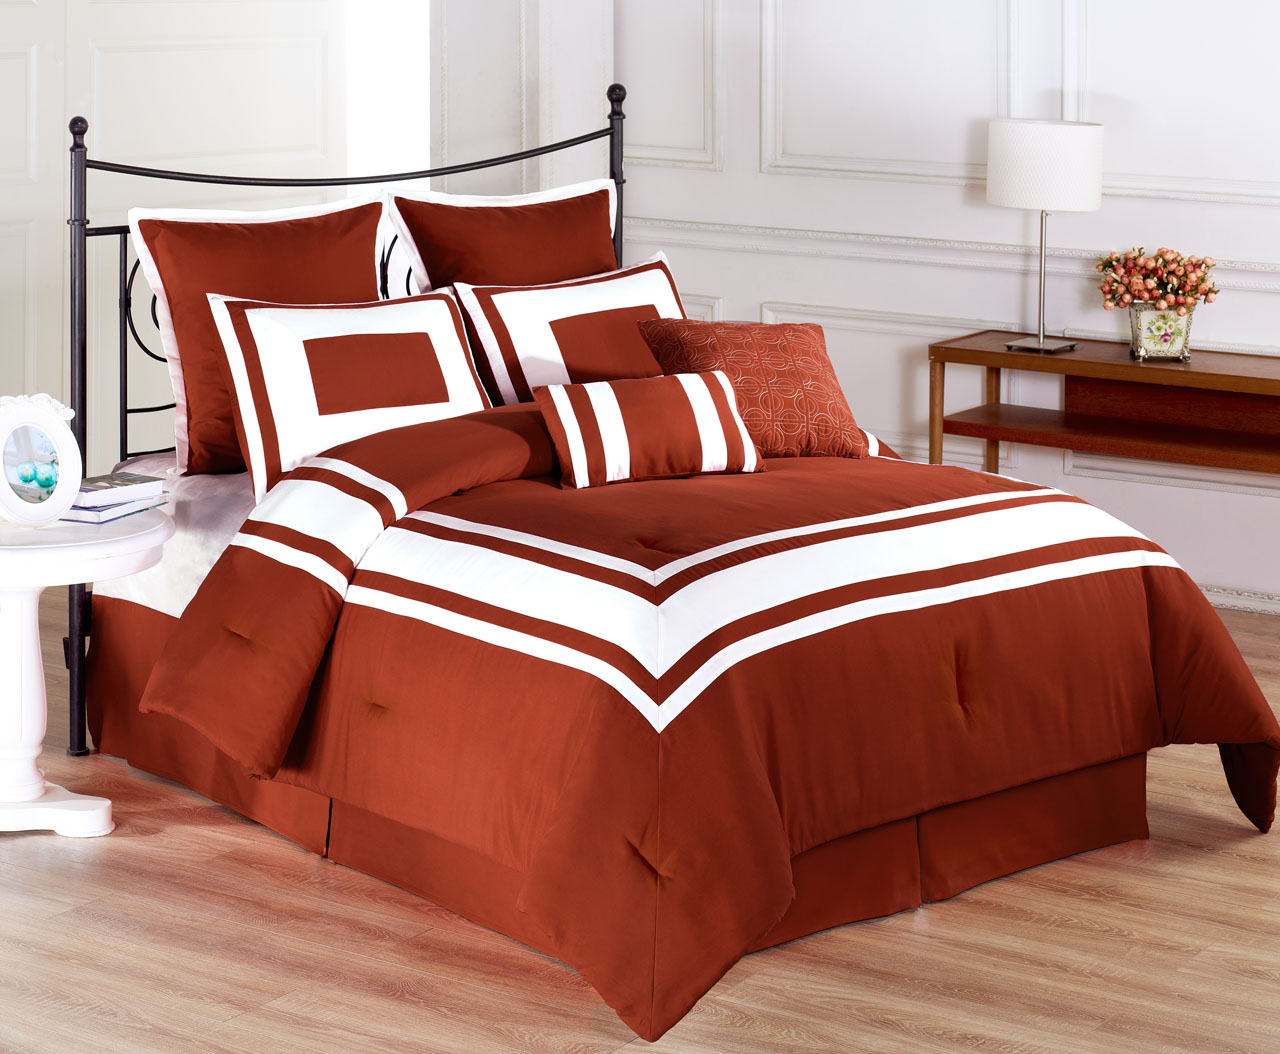 gorgeous orange navy turquoise brown in sets comforter bedding and designs white walmart bedroom target set orangebluewhite cover queen twin bed bag piece blue regal